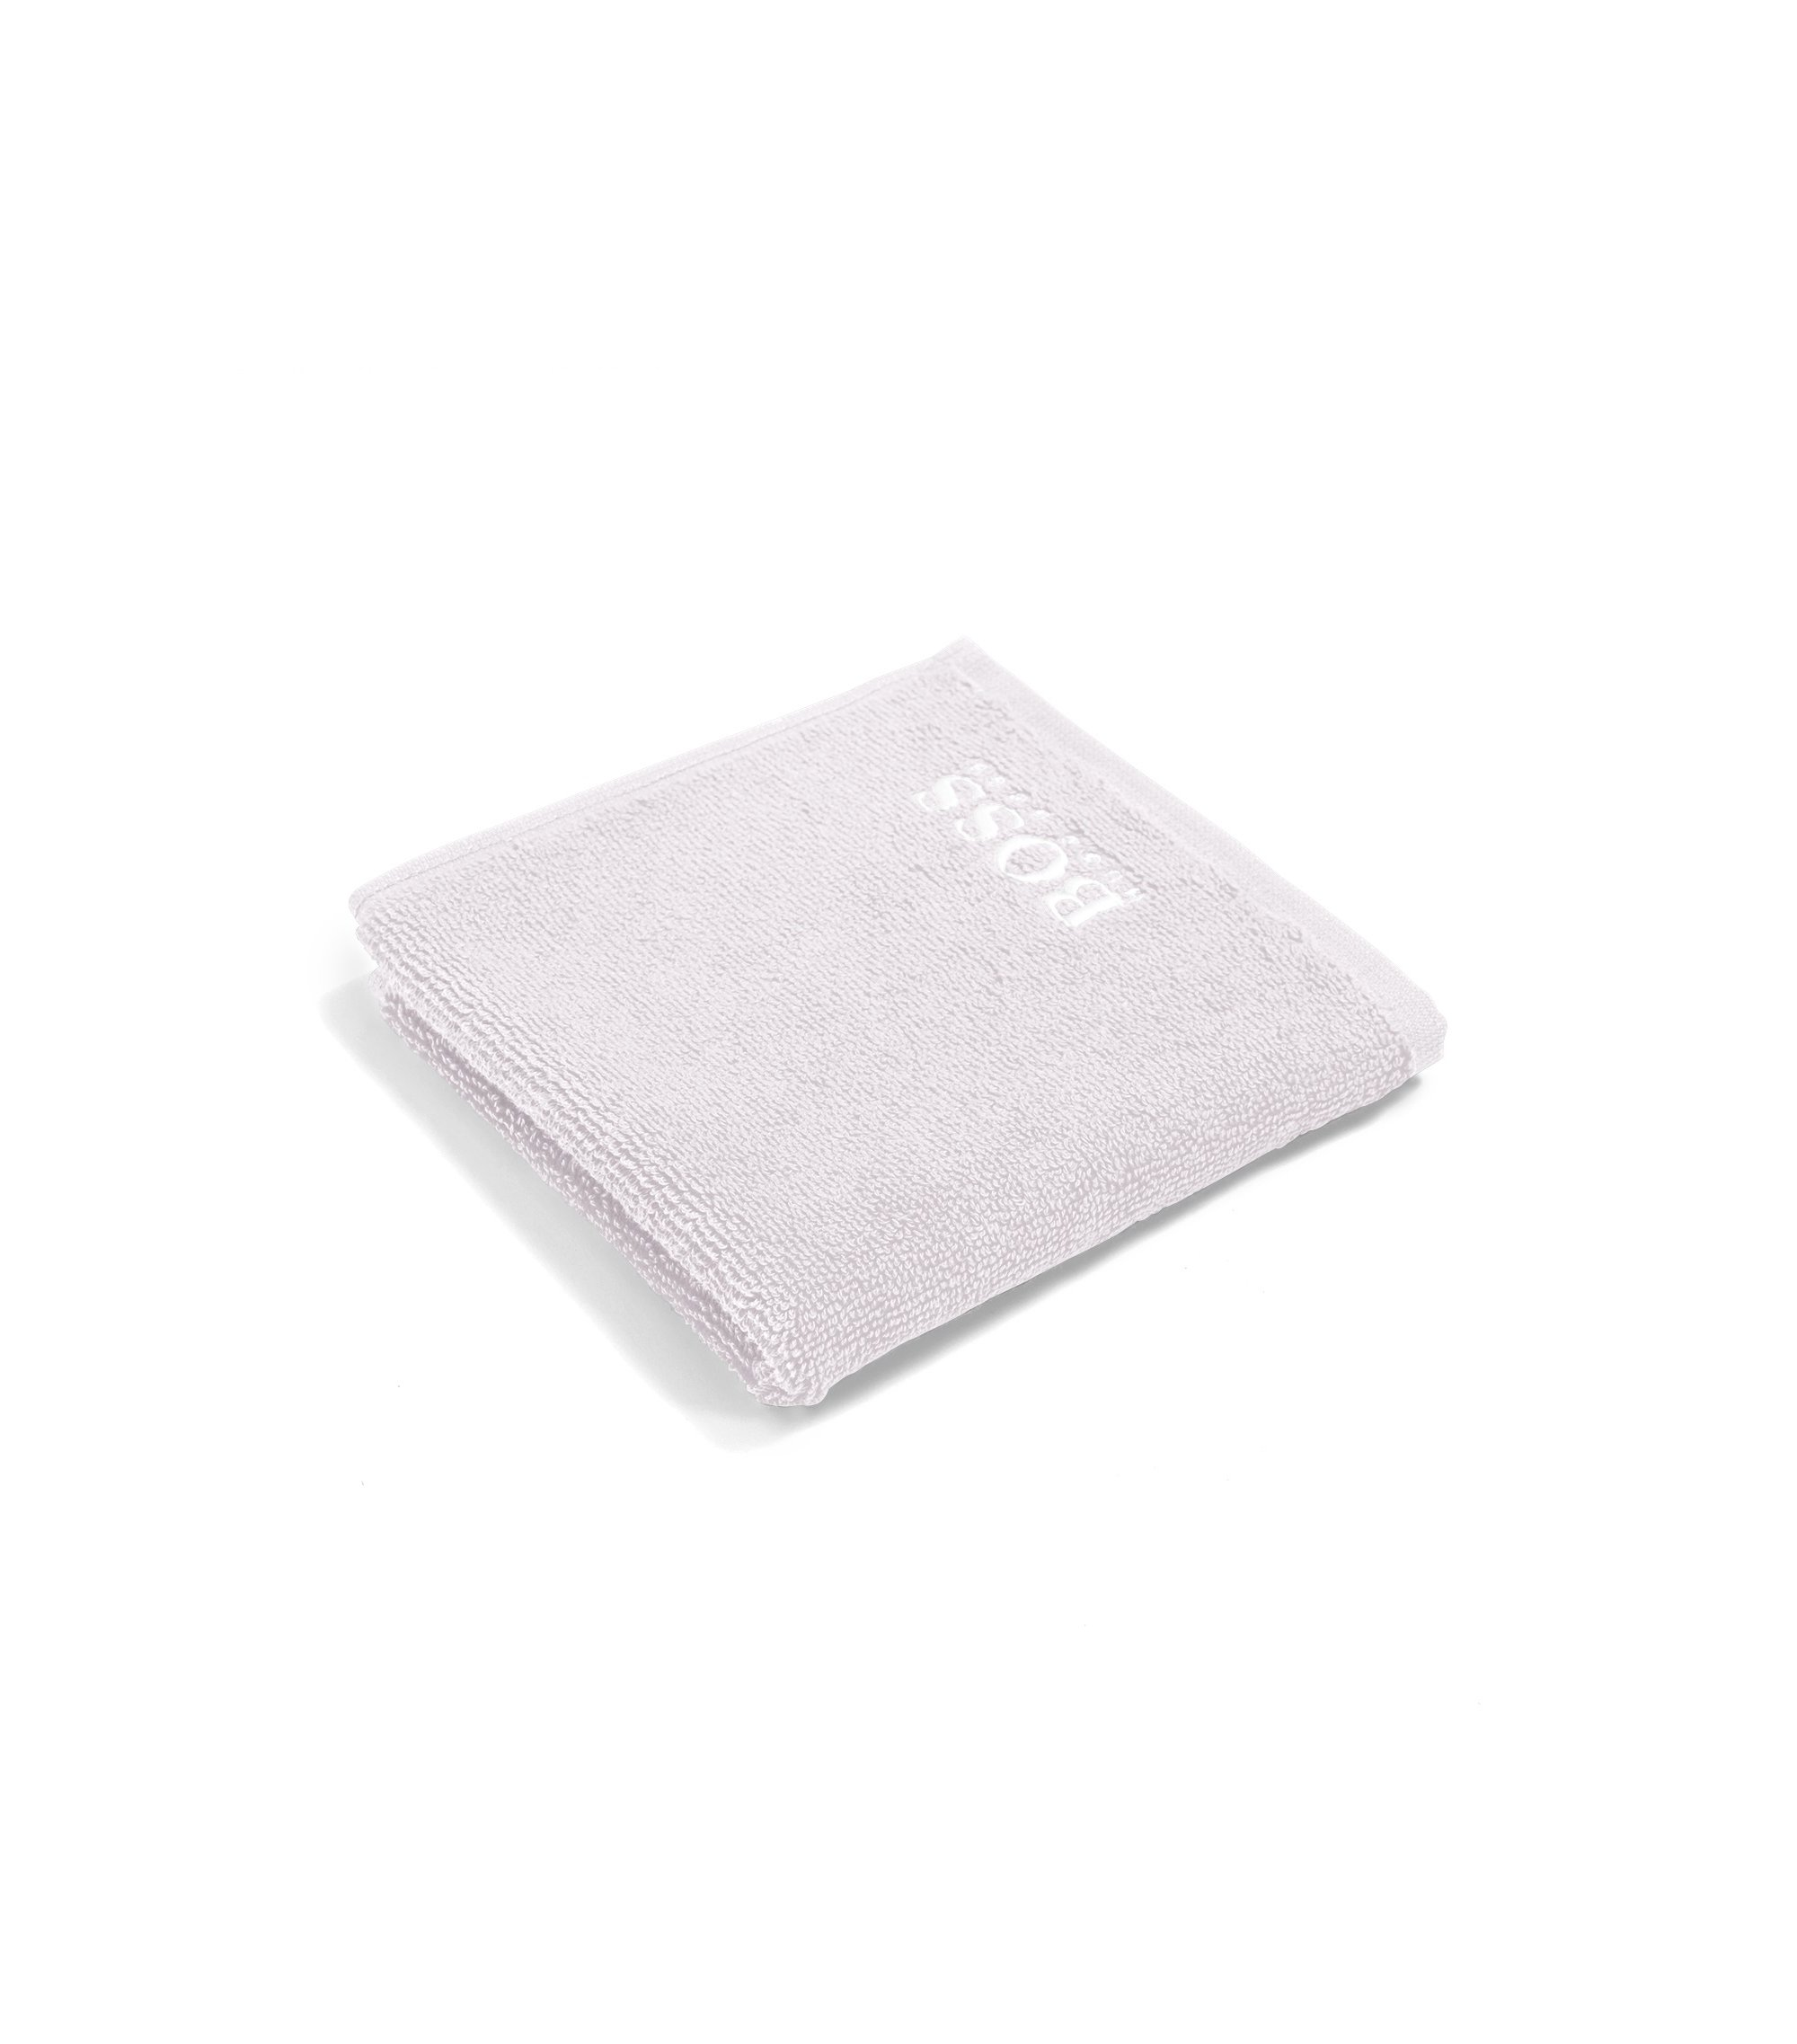 Finest Egyptian cotton face cloth with logo embroidery, Silver